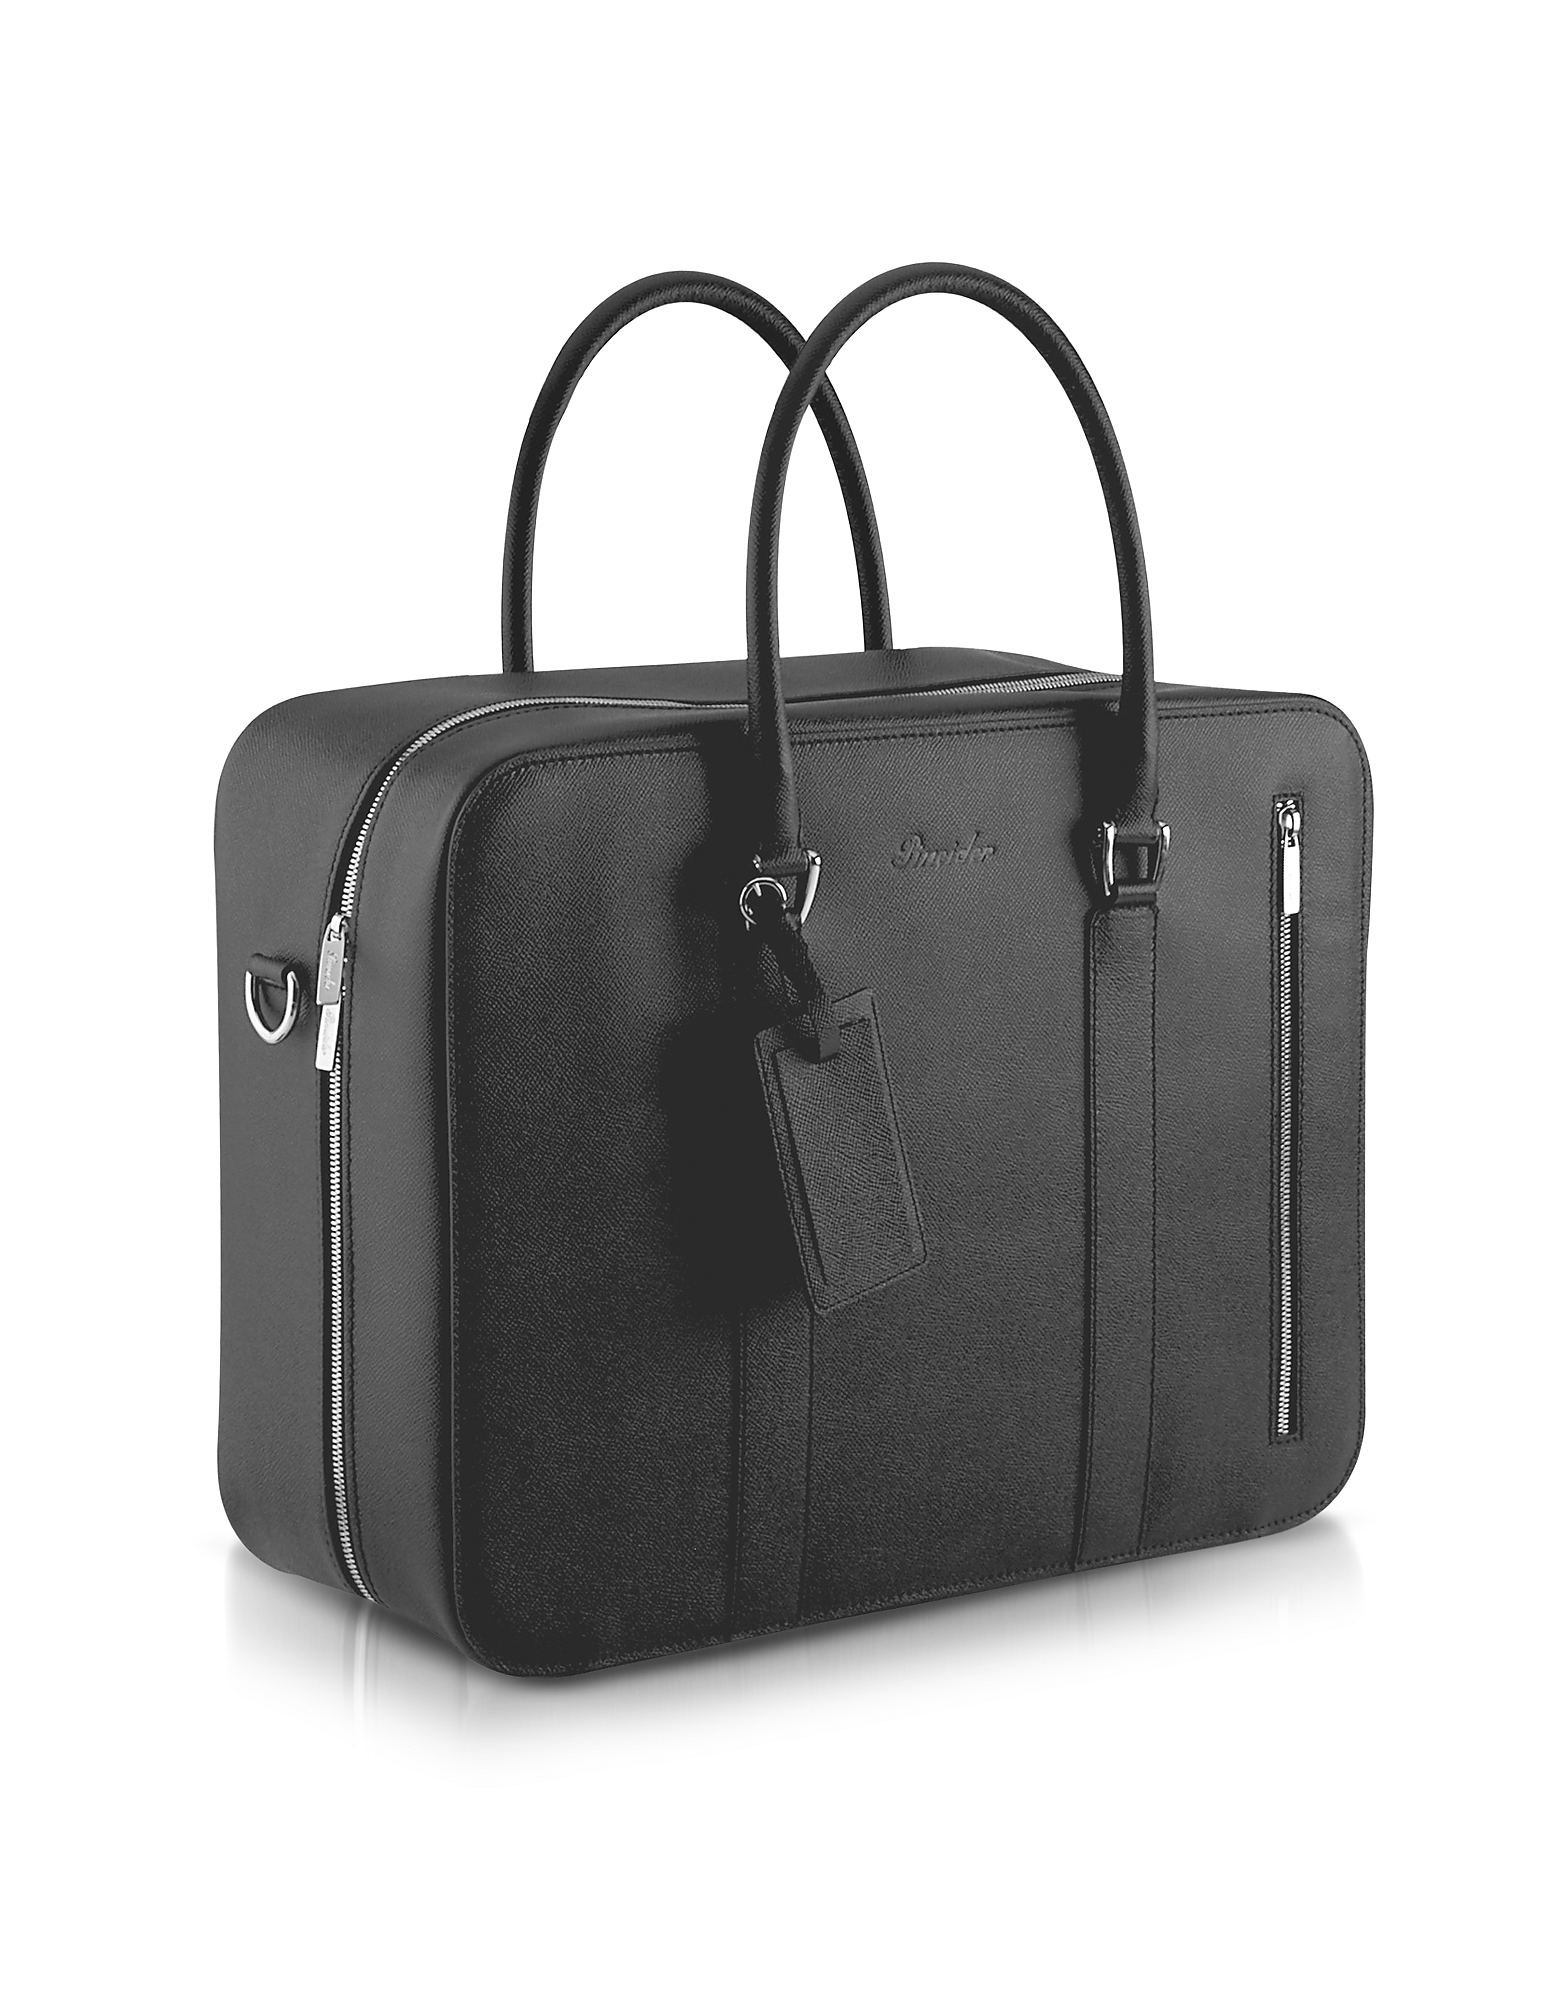 Pineider Briefcases, City Chic - Double Handle Calfskin Briefcase